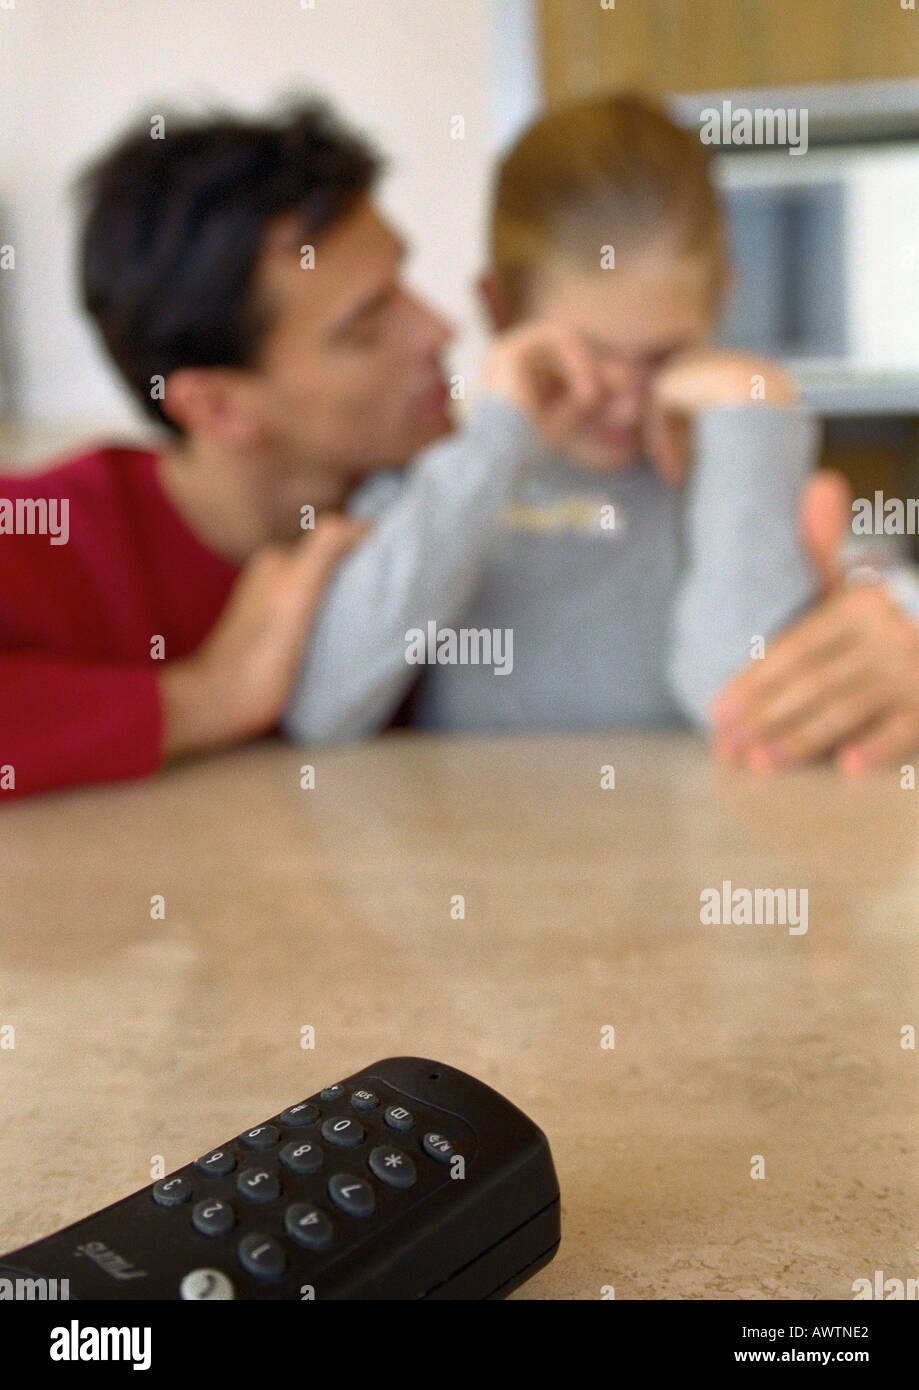 Remote control on table, father and daughter in background, blurred. - Stock Image